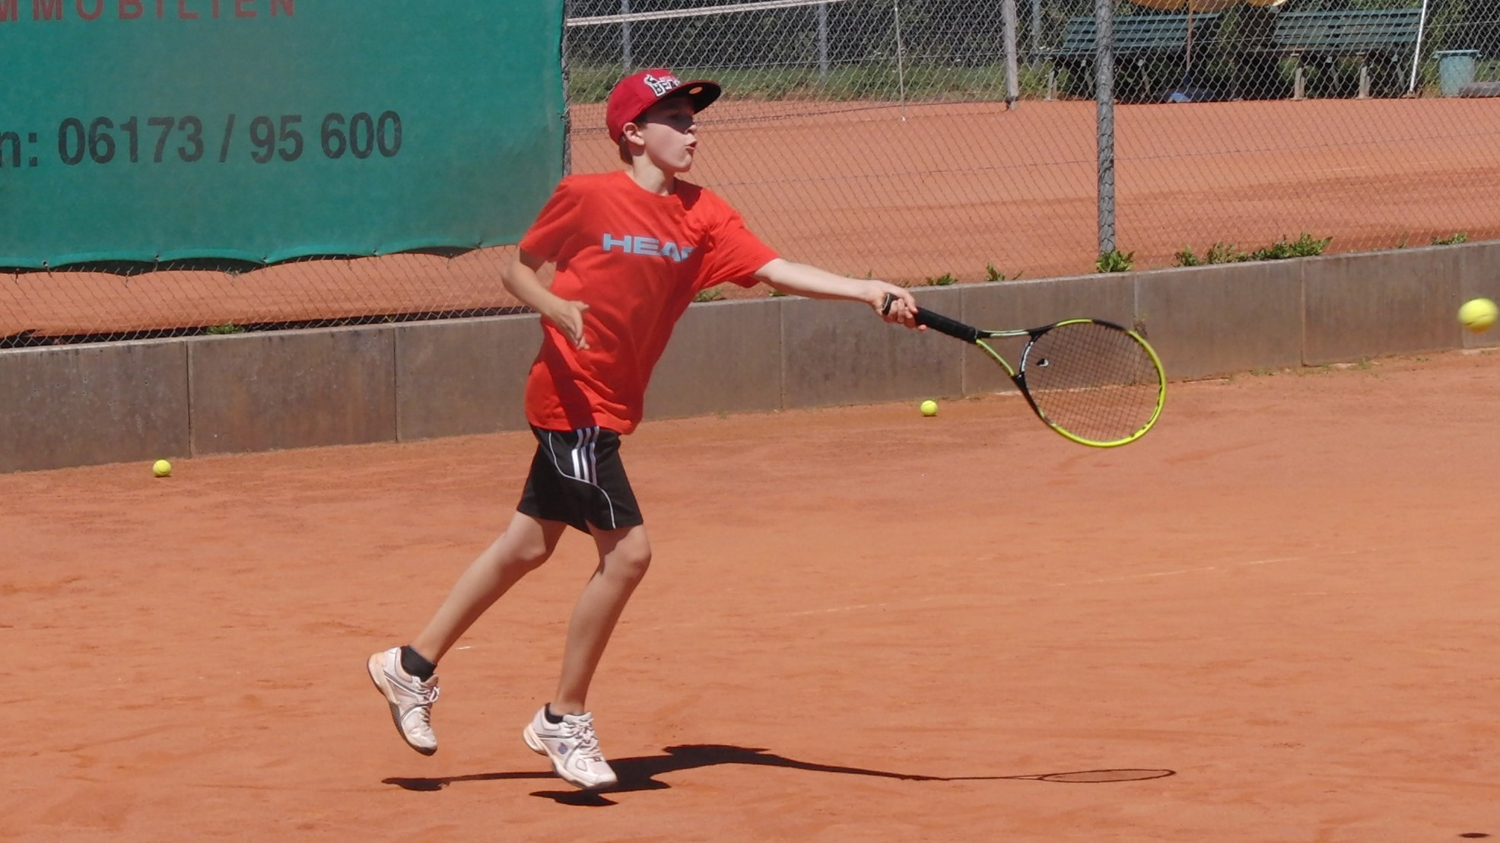 Tenniscamp Sweetspot bei T65_2016 (244)